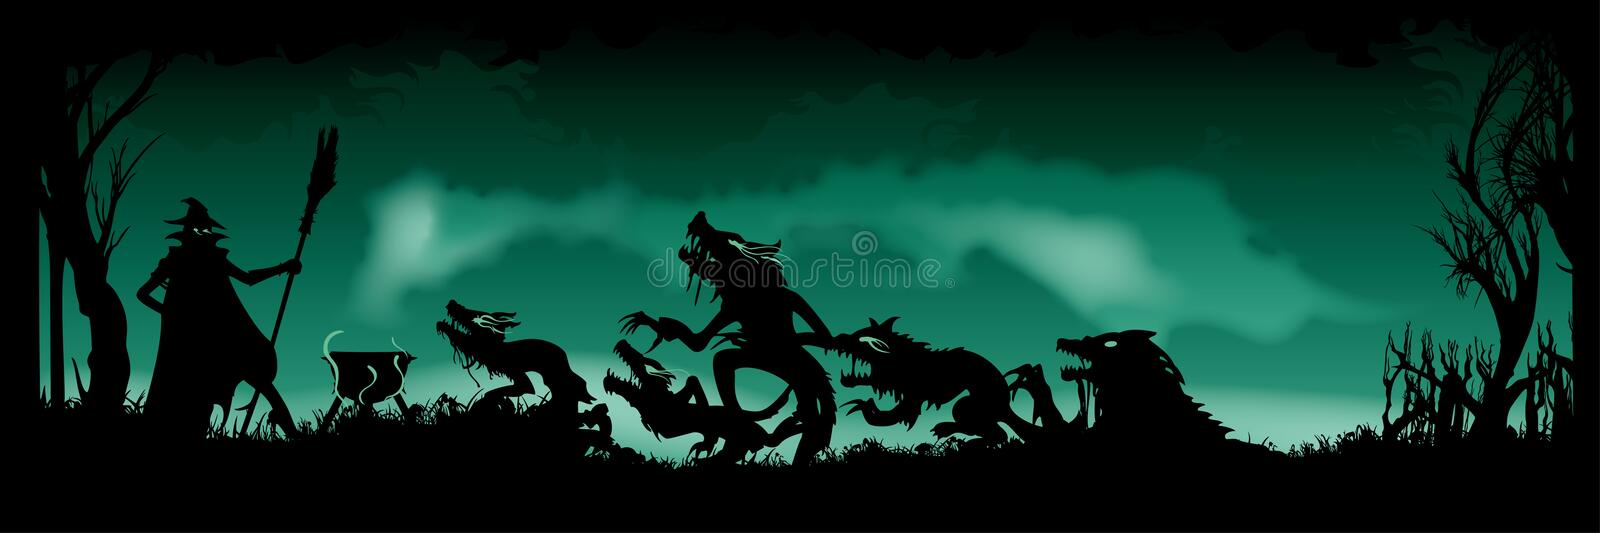 Download Halloween Witching banner stock vector. Image of copy - 34623203